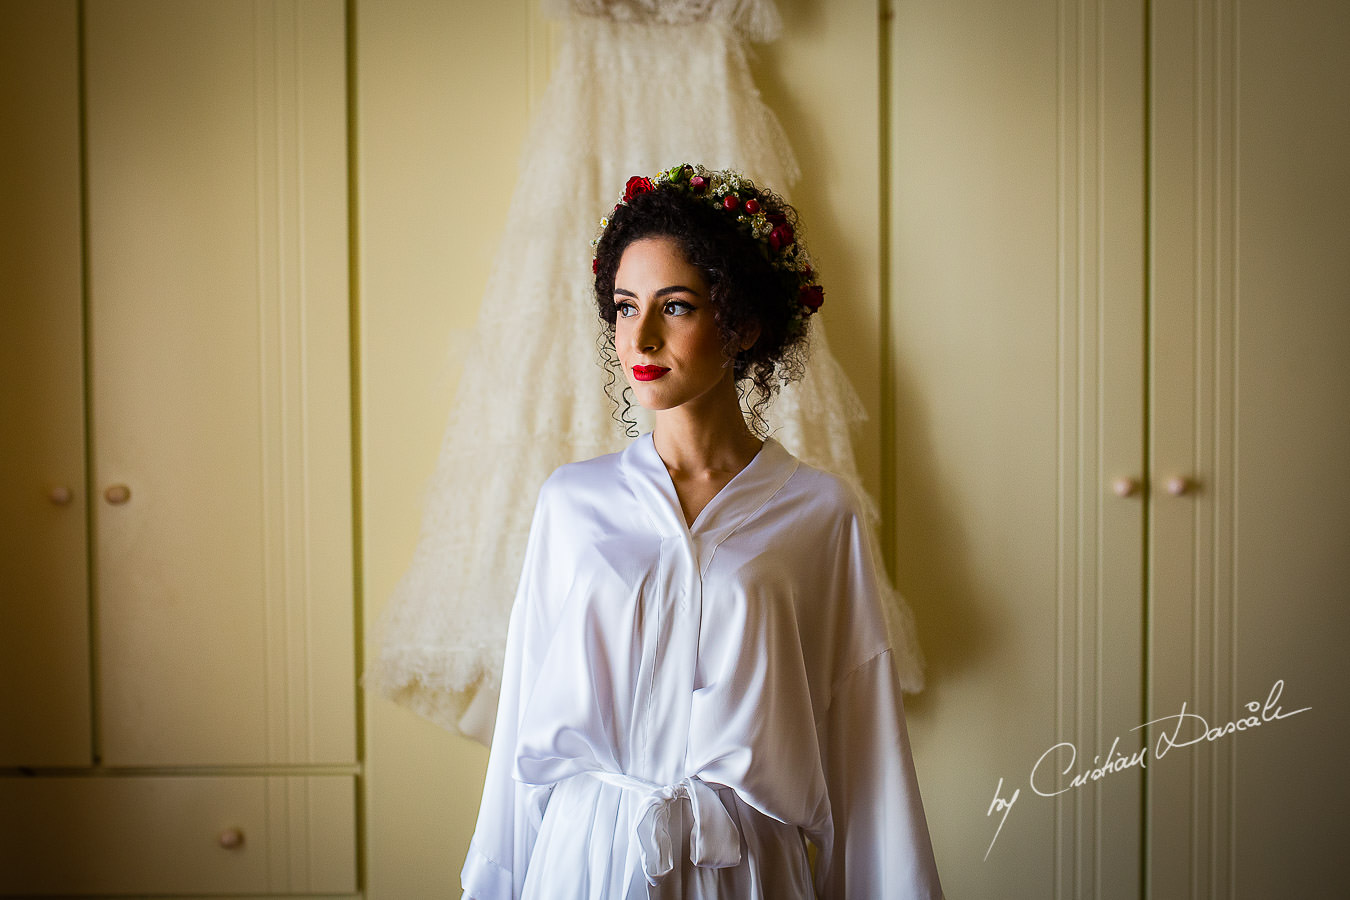 The bride before her getting ready, captured by Cyprus Wedding Photographer Cristian Dascalu at a beautiful wedding in Larnaka, Cyprus.